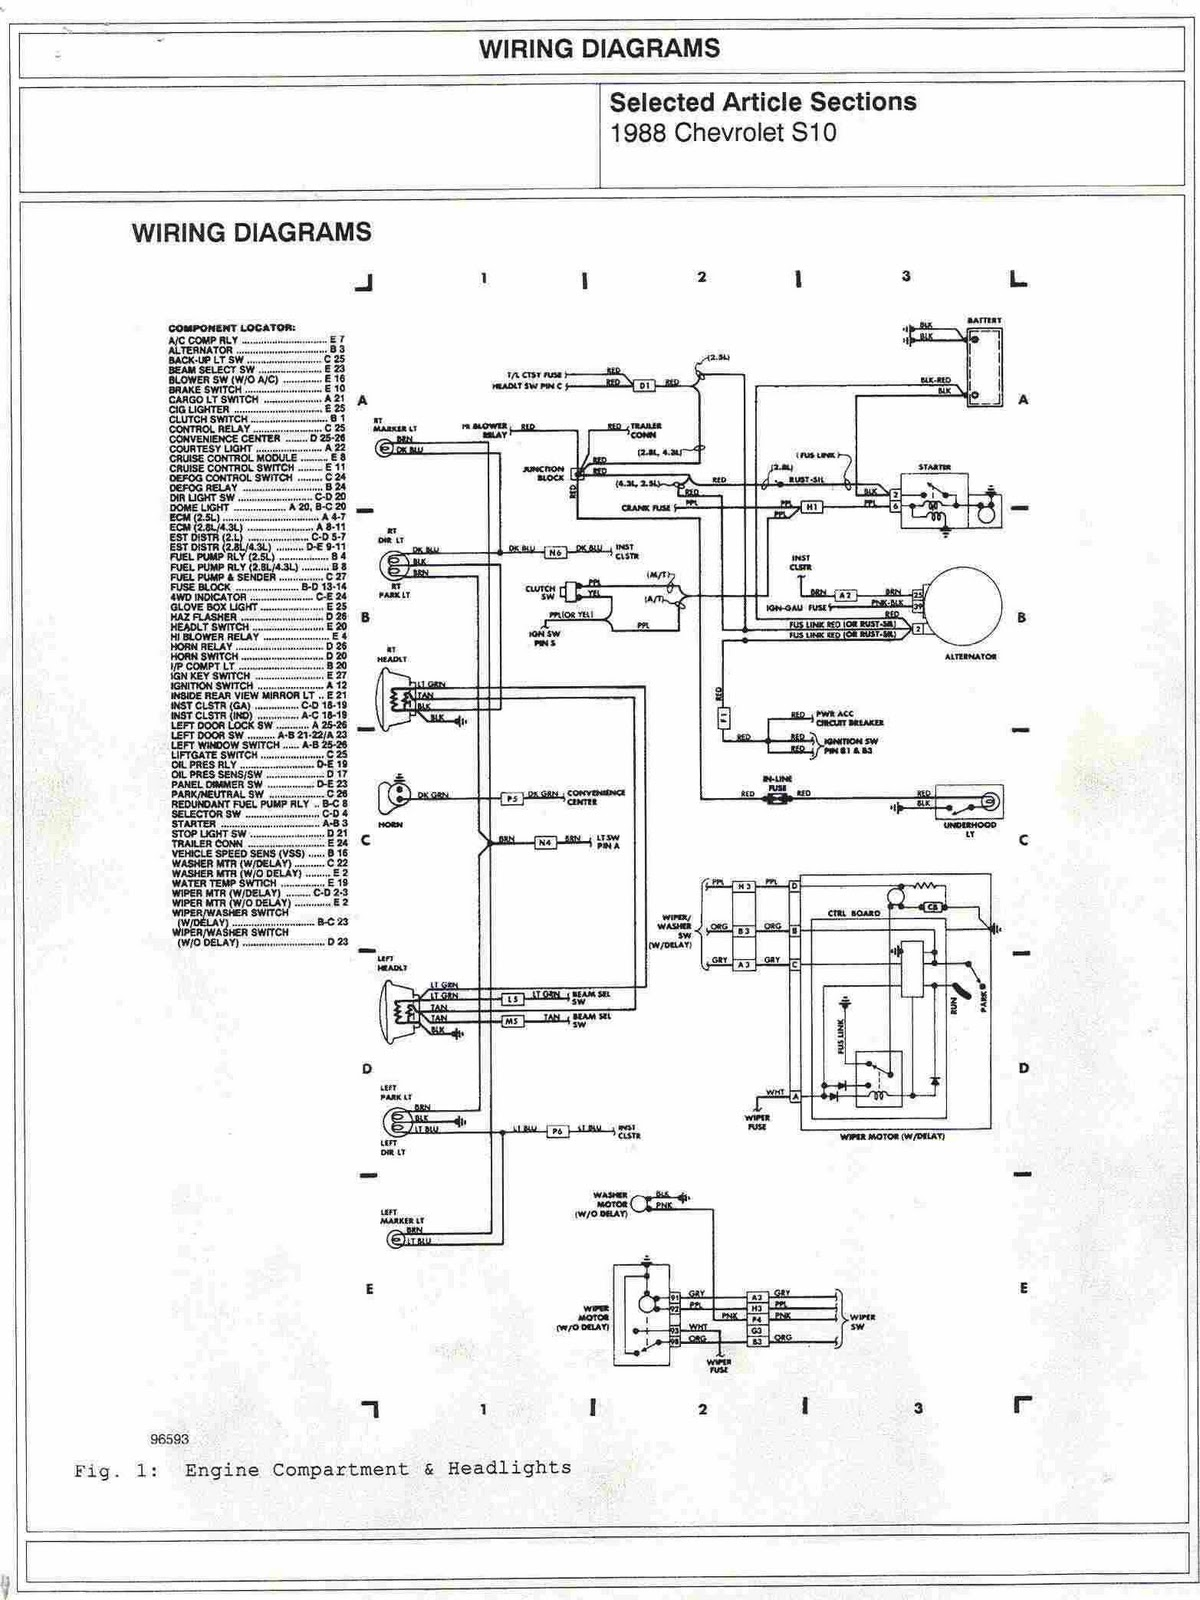 1988+Chevrolet+S10+Engine+Compartment+and+Headlights+Wiring+Diagrams 95 s10 wiring diagram 95 tahoe wiring diagram \u2022 wiring diagrams 1998 chevrolet c1500 wiring diagram at suagrazia.org